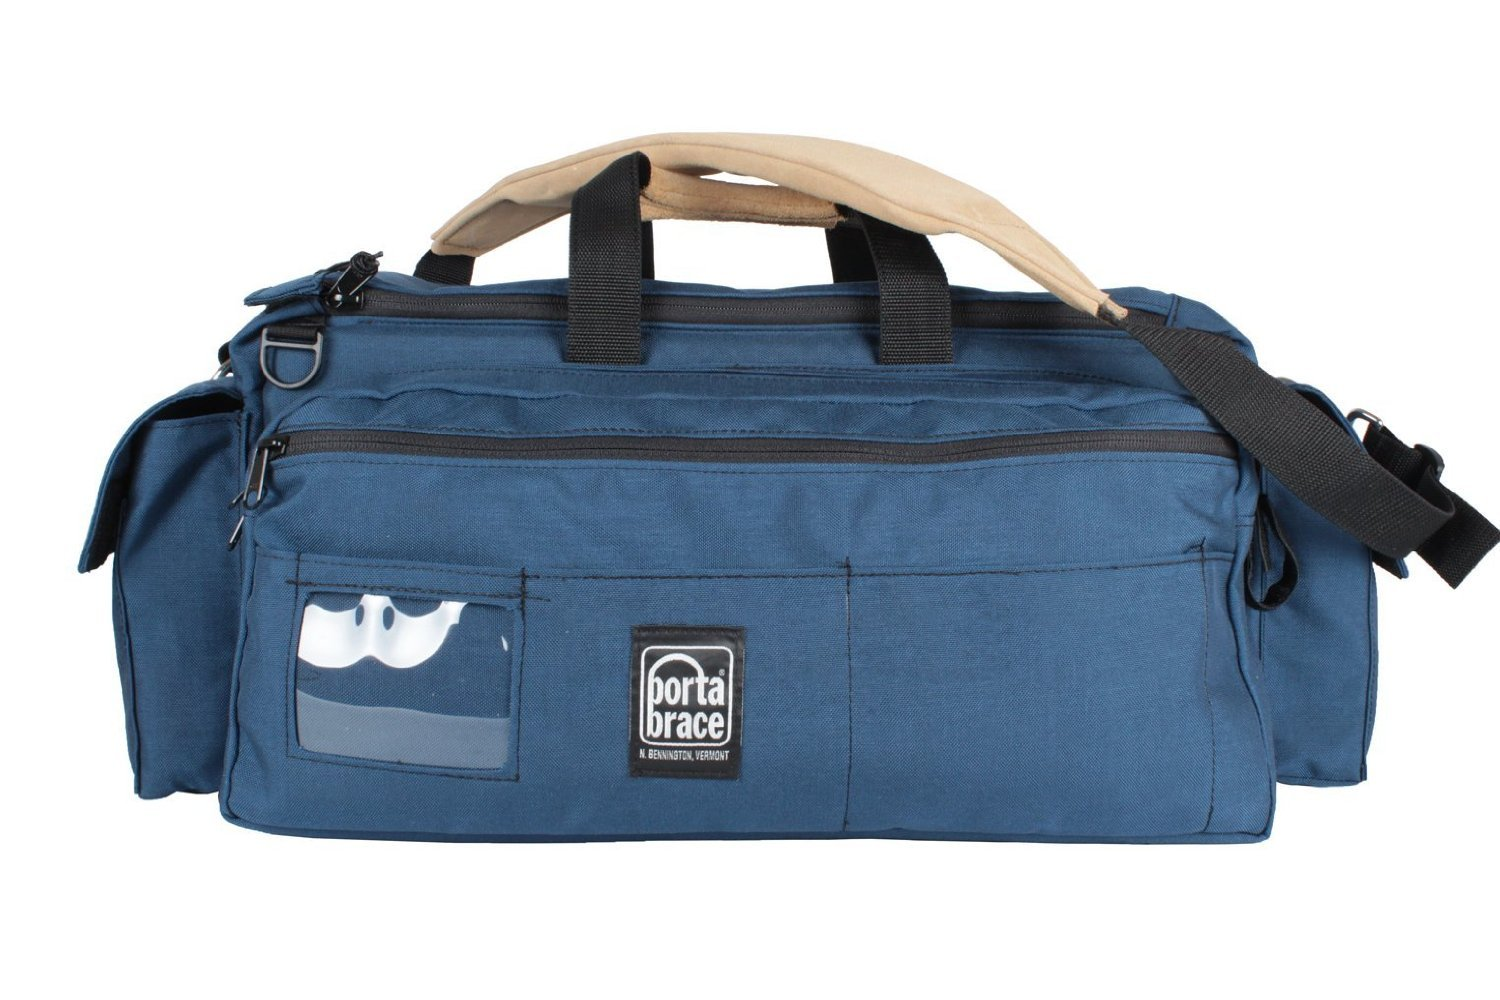 Portabrace RB-3 Run Bag Lightweight - Large (Blue) [並行輸入品]   B019SZE1YI